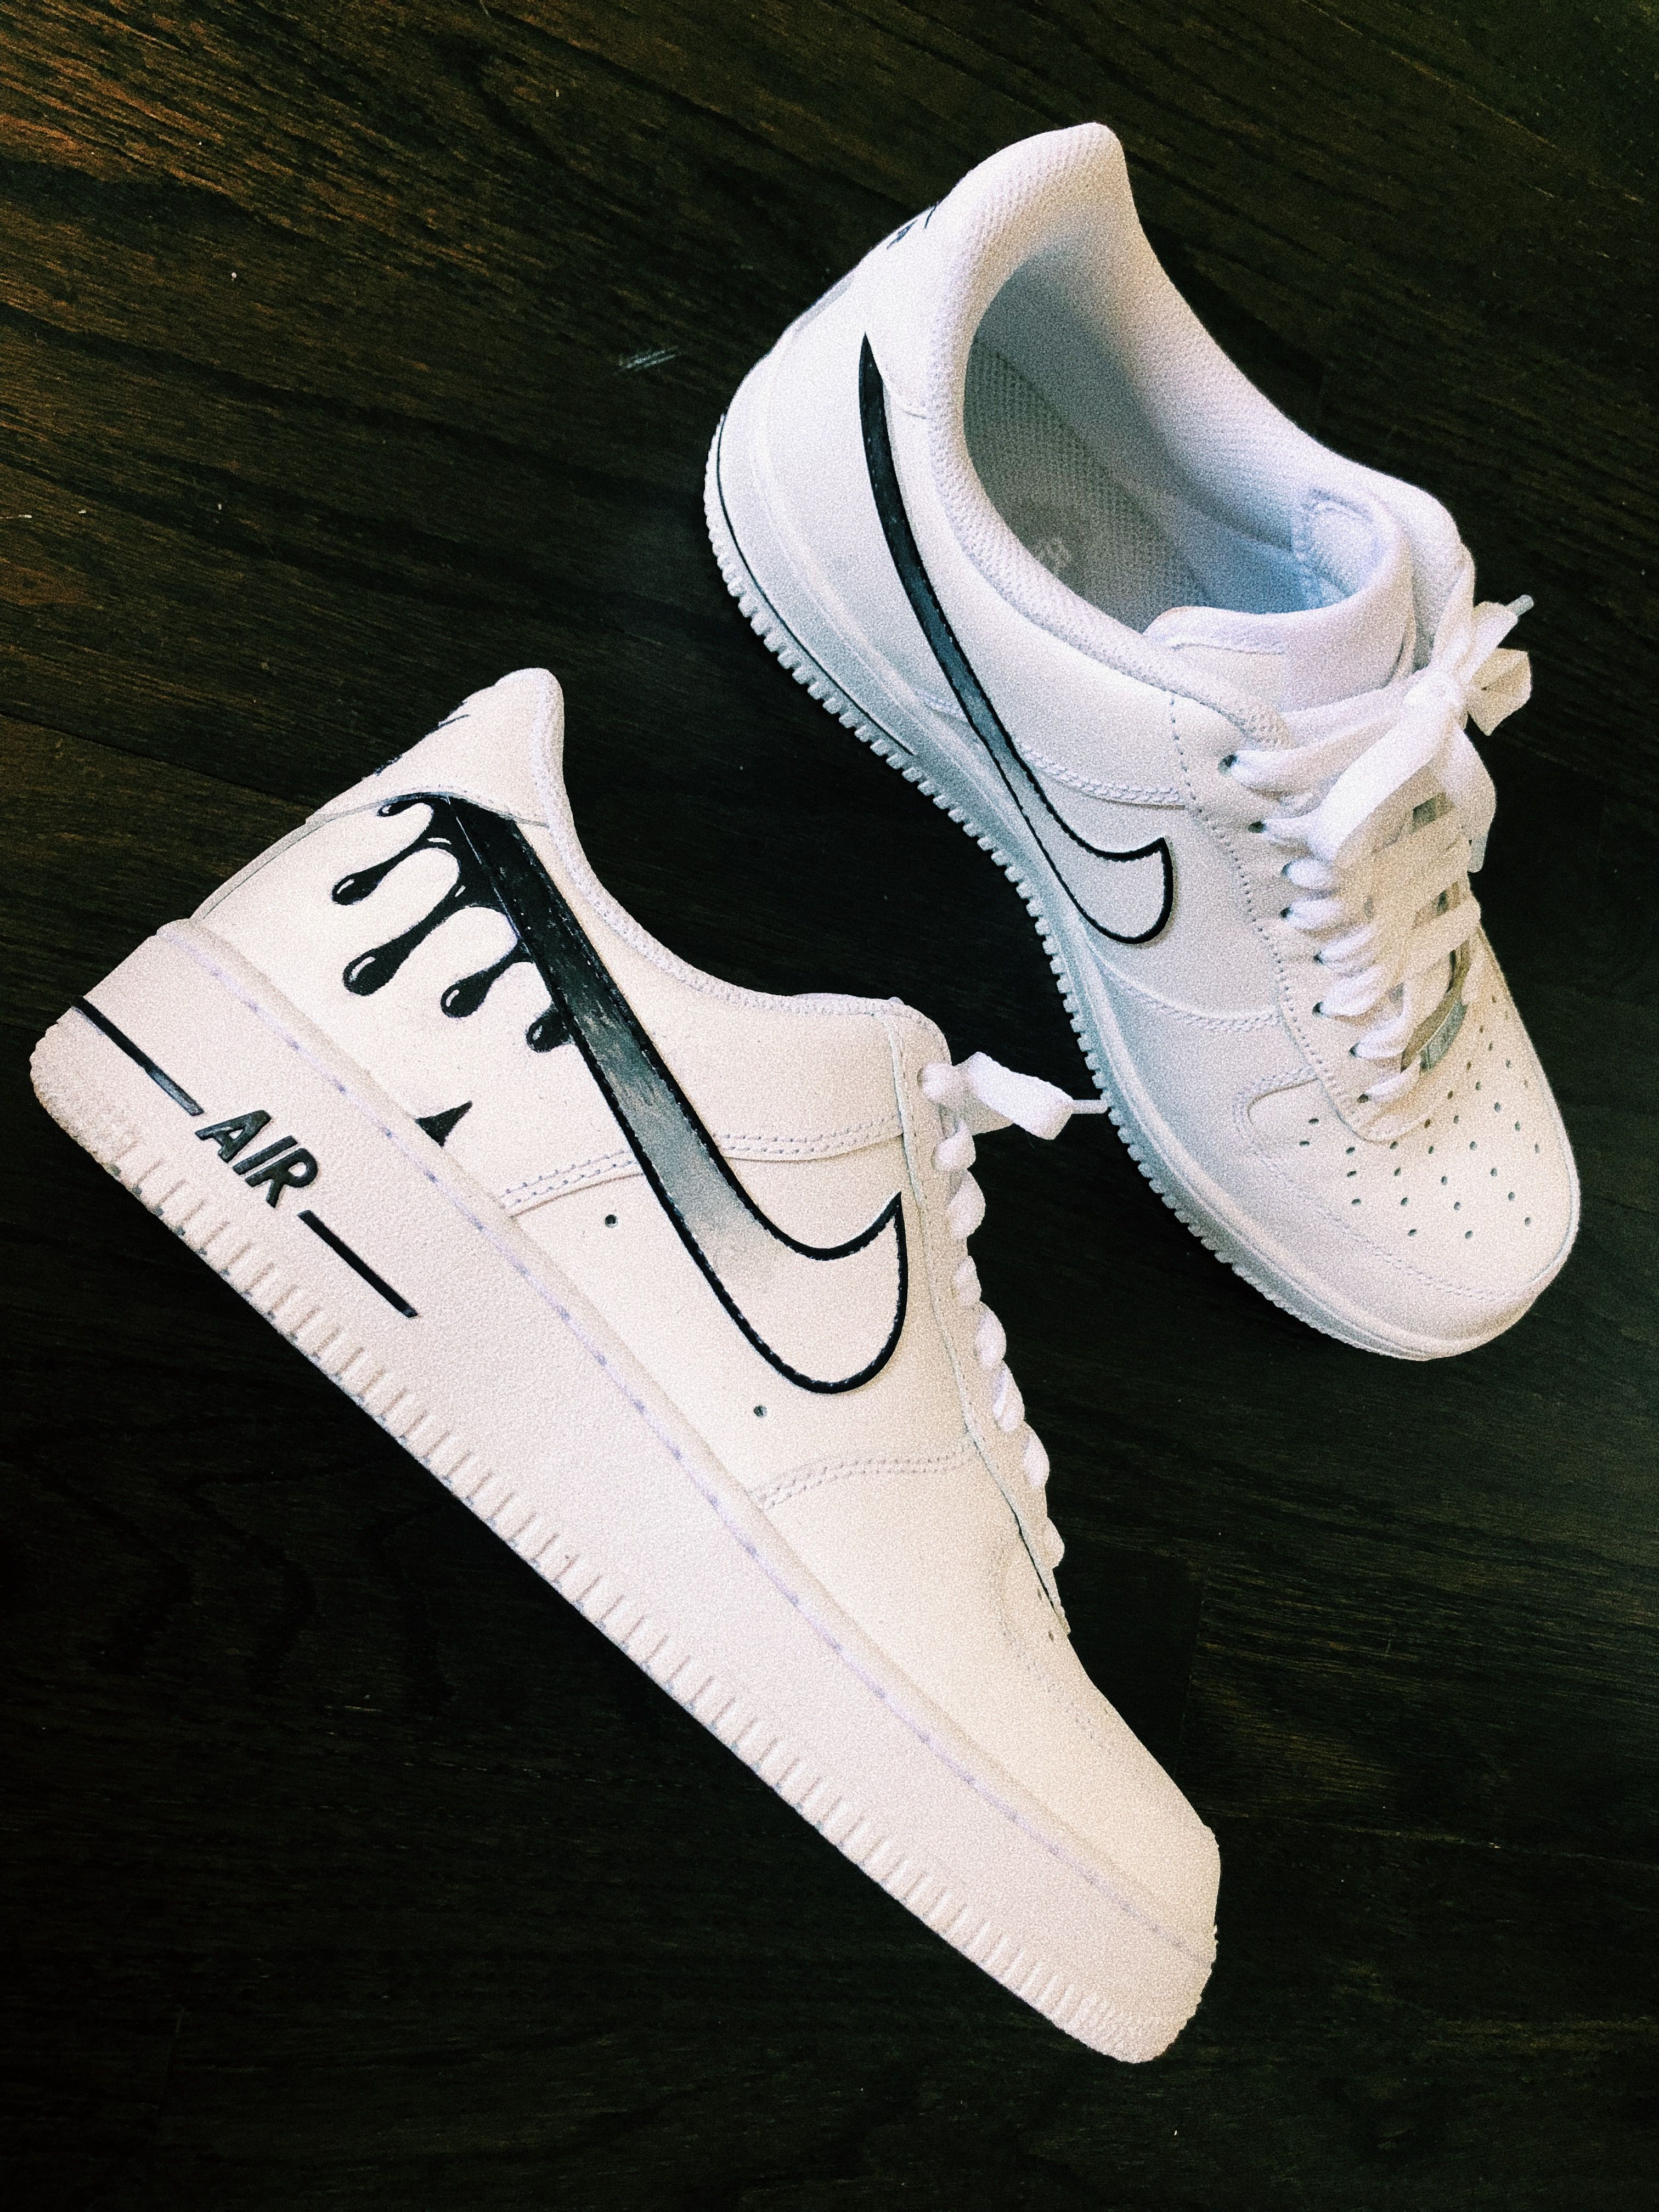 Pin by megmurrray on AF1 in 2019 | Shoes sneakers, Shoes